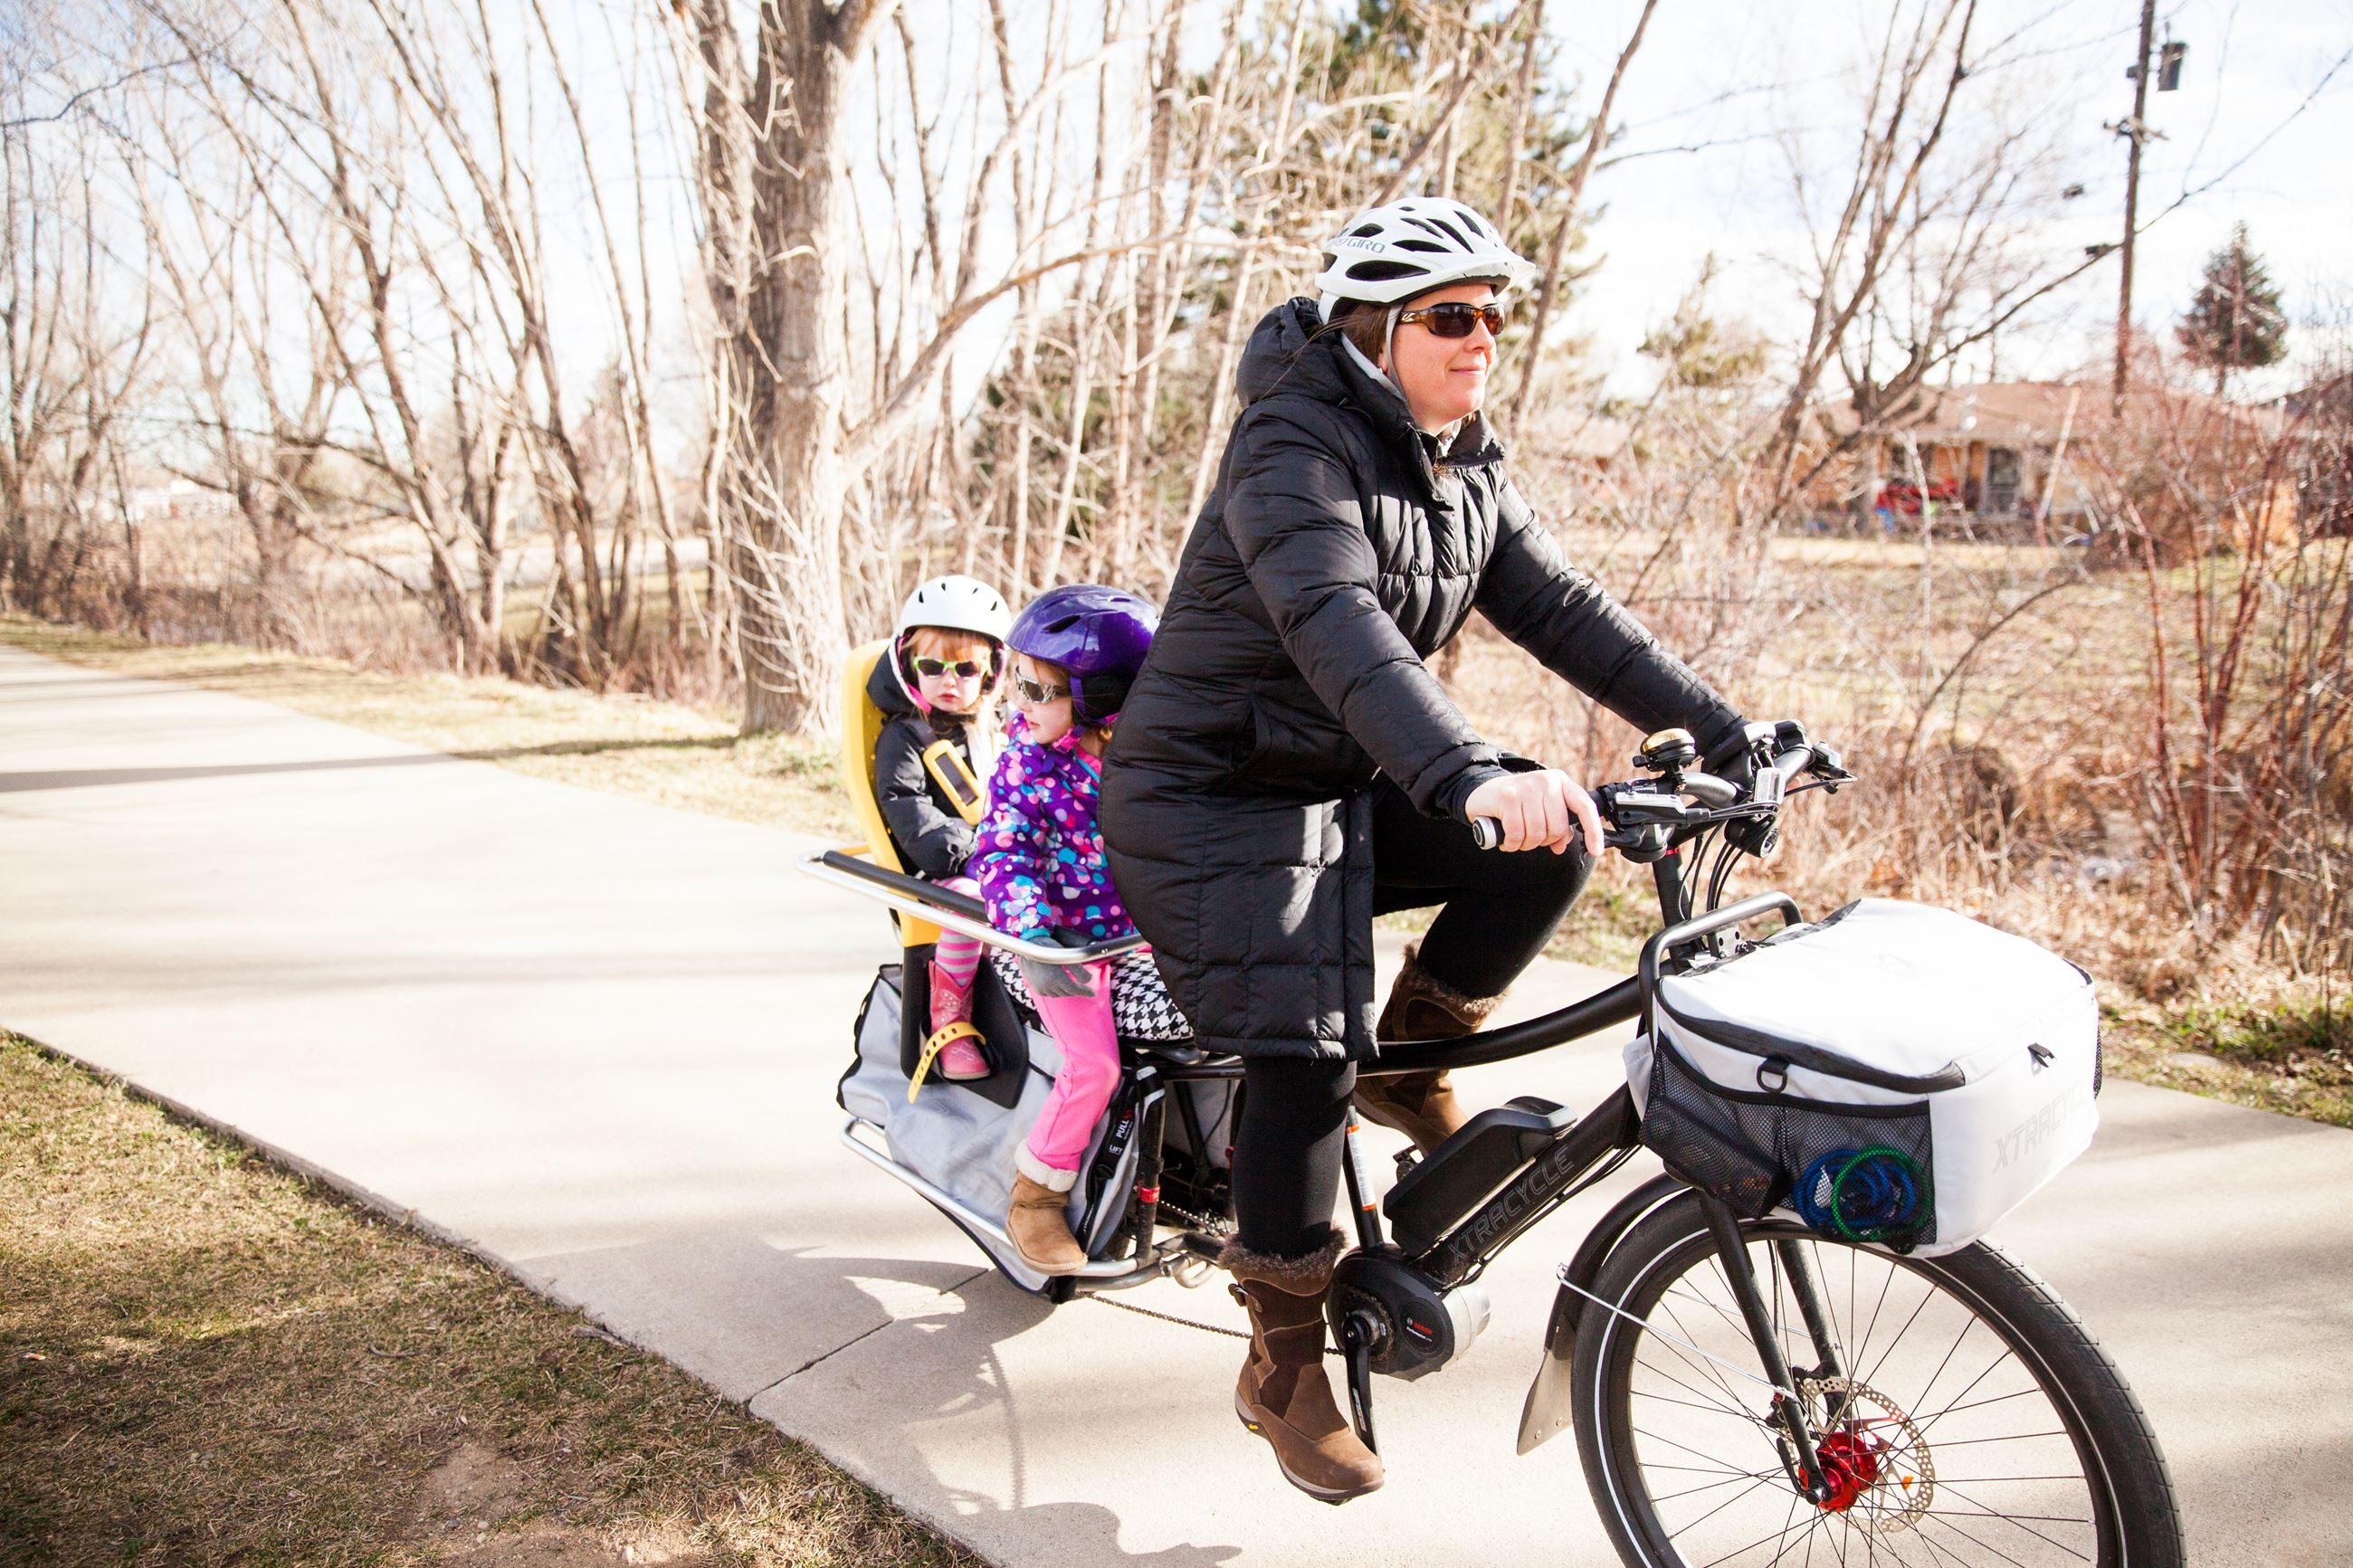 E-bike with Mom and children on paved pathway